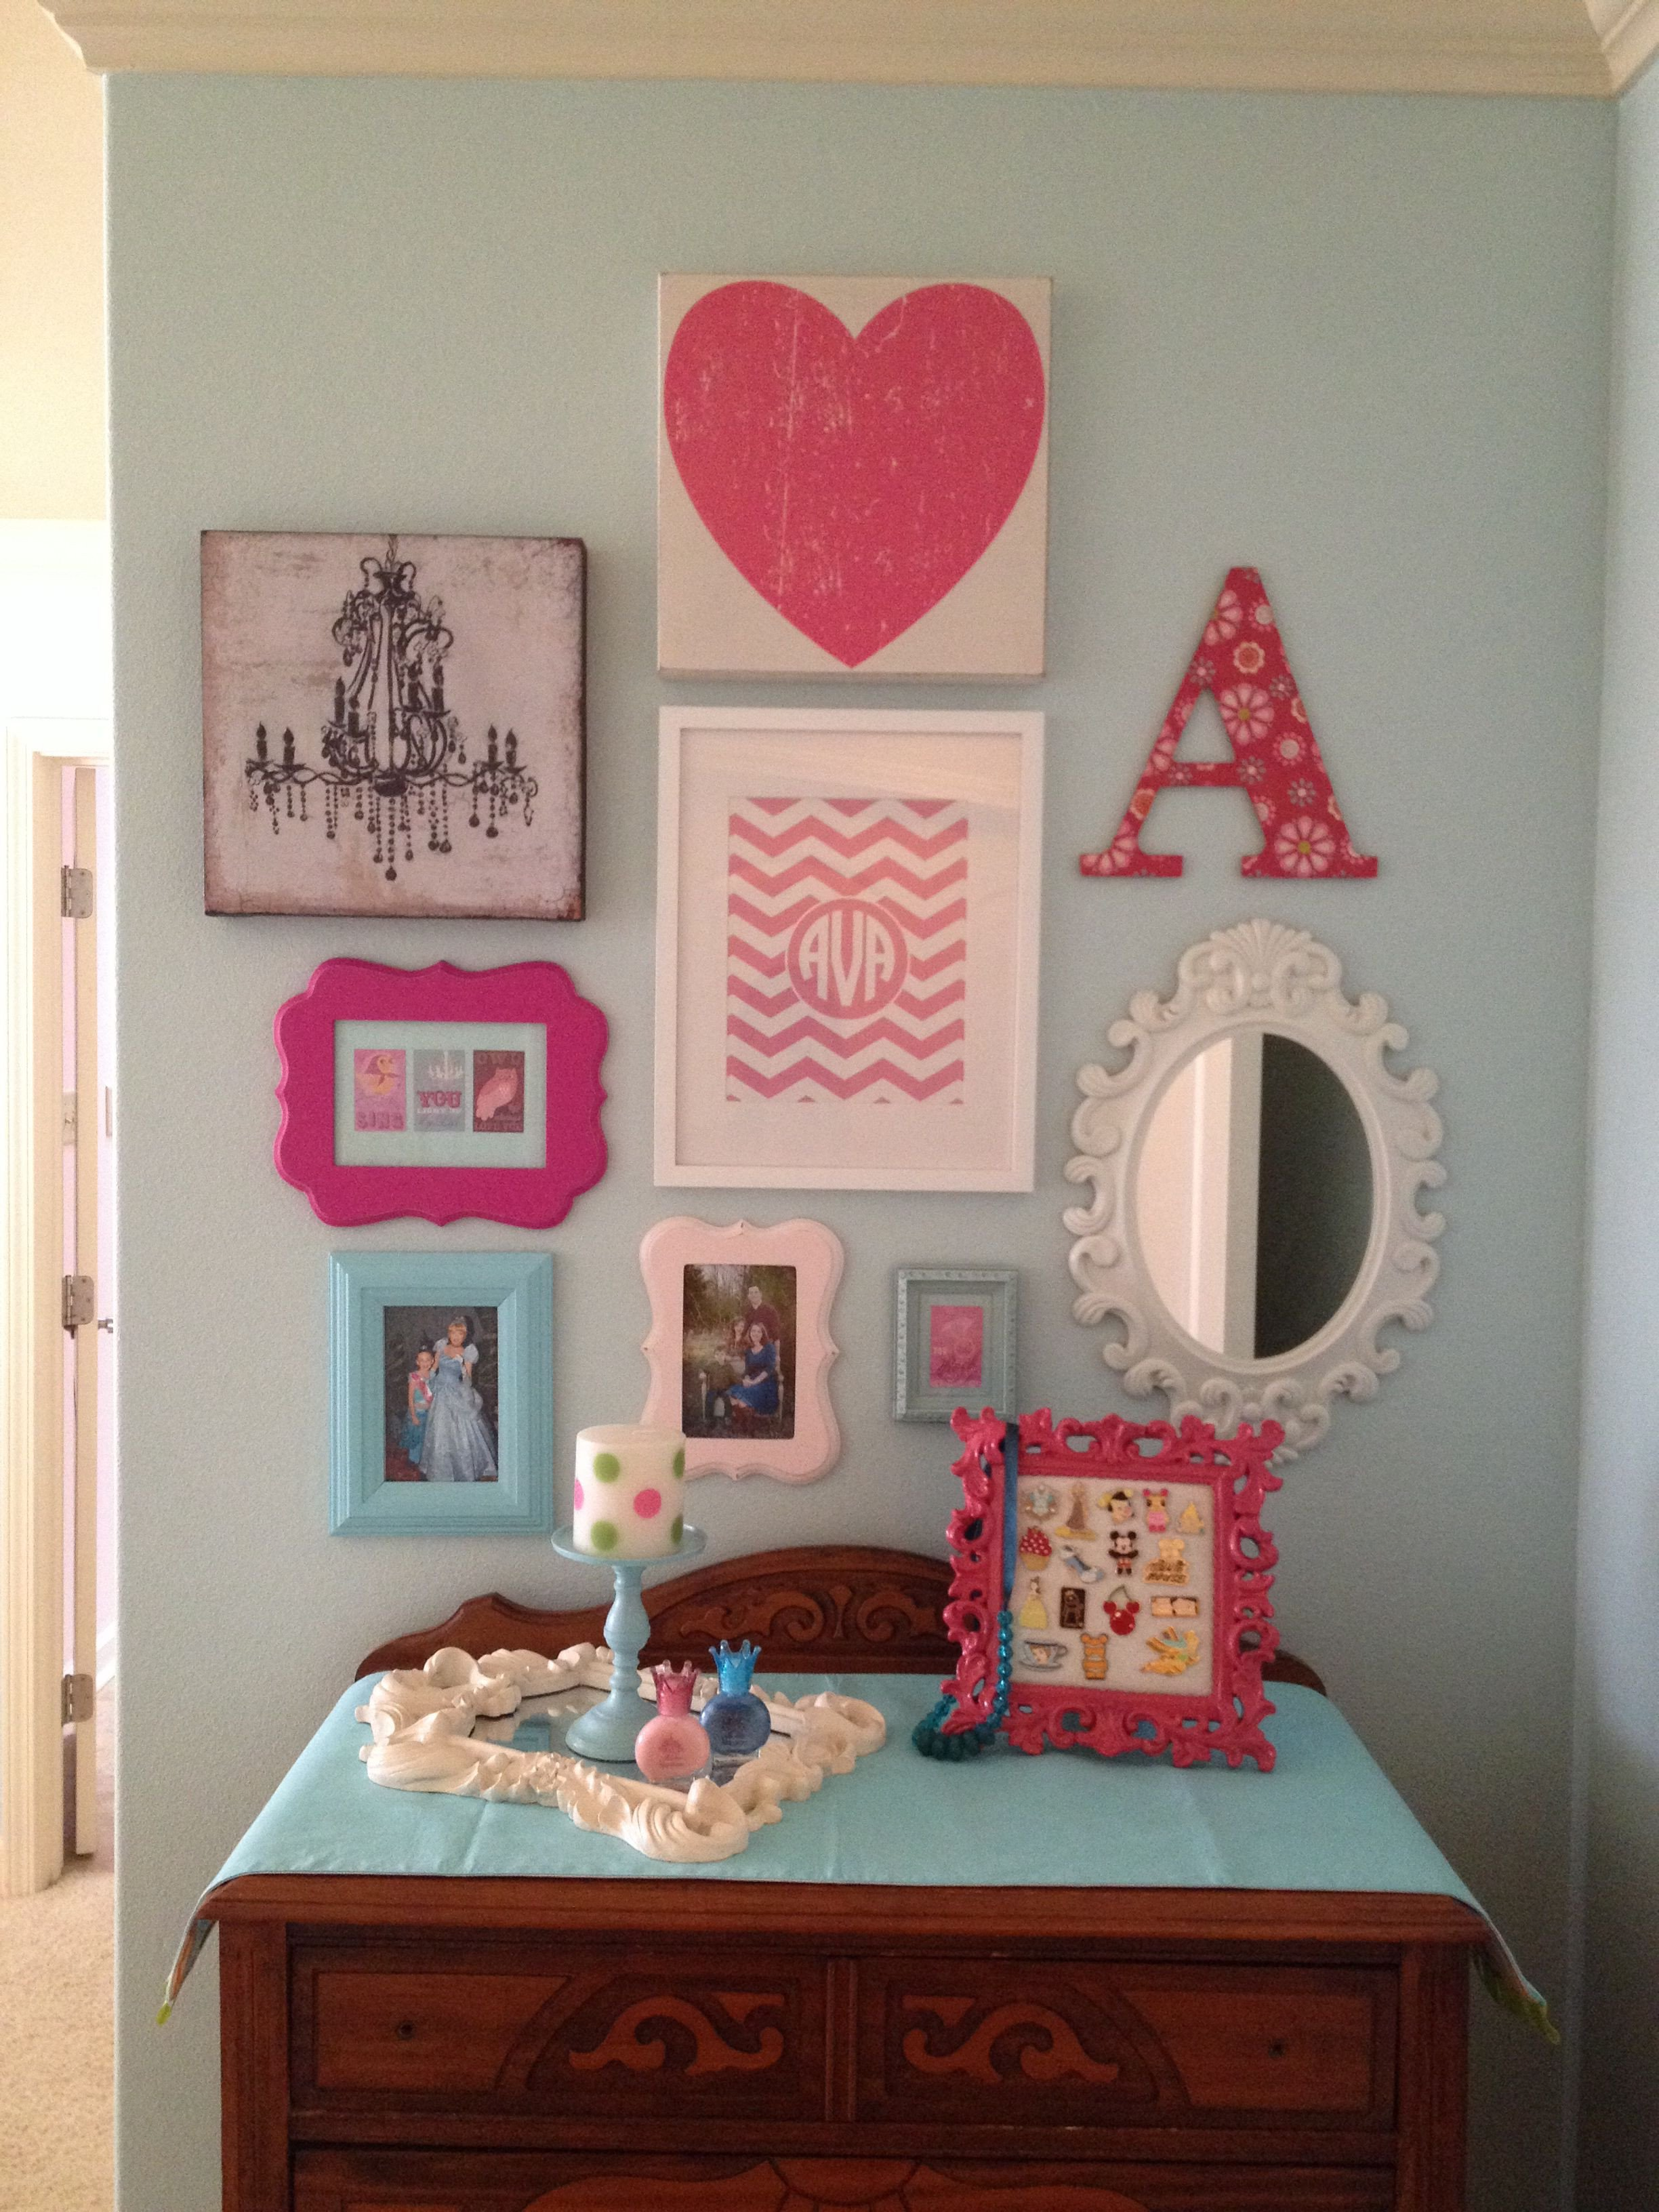 Kids Bedroom Wall Decor Elegant Girls Room Gallery Wall